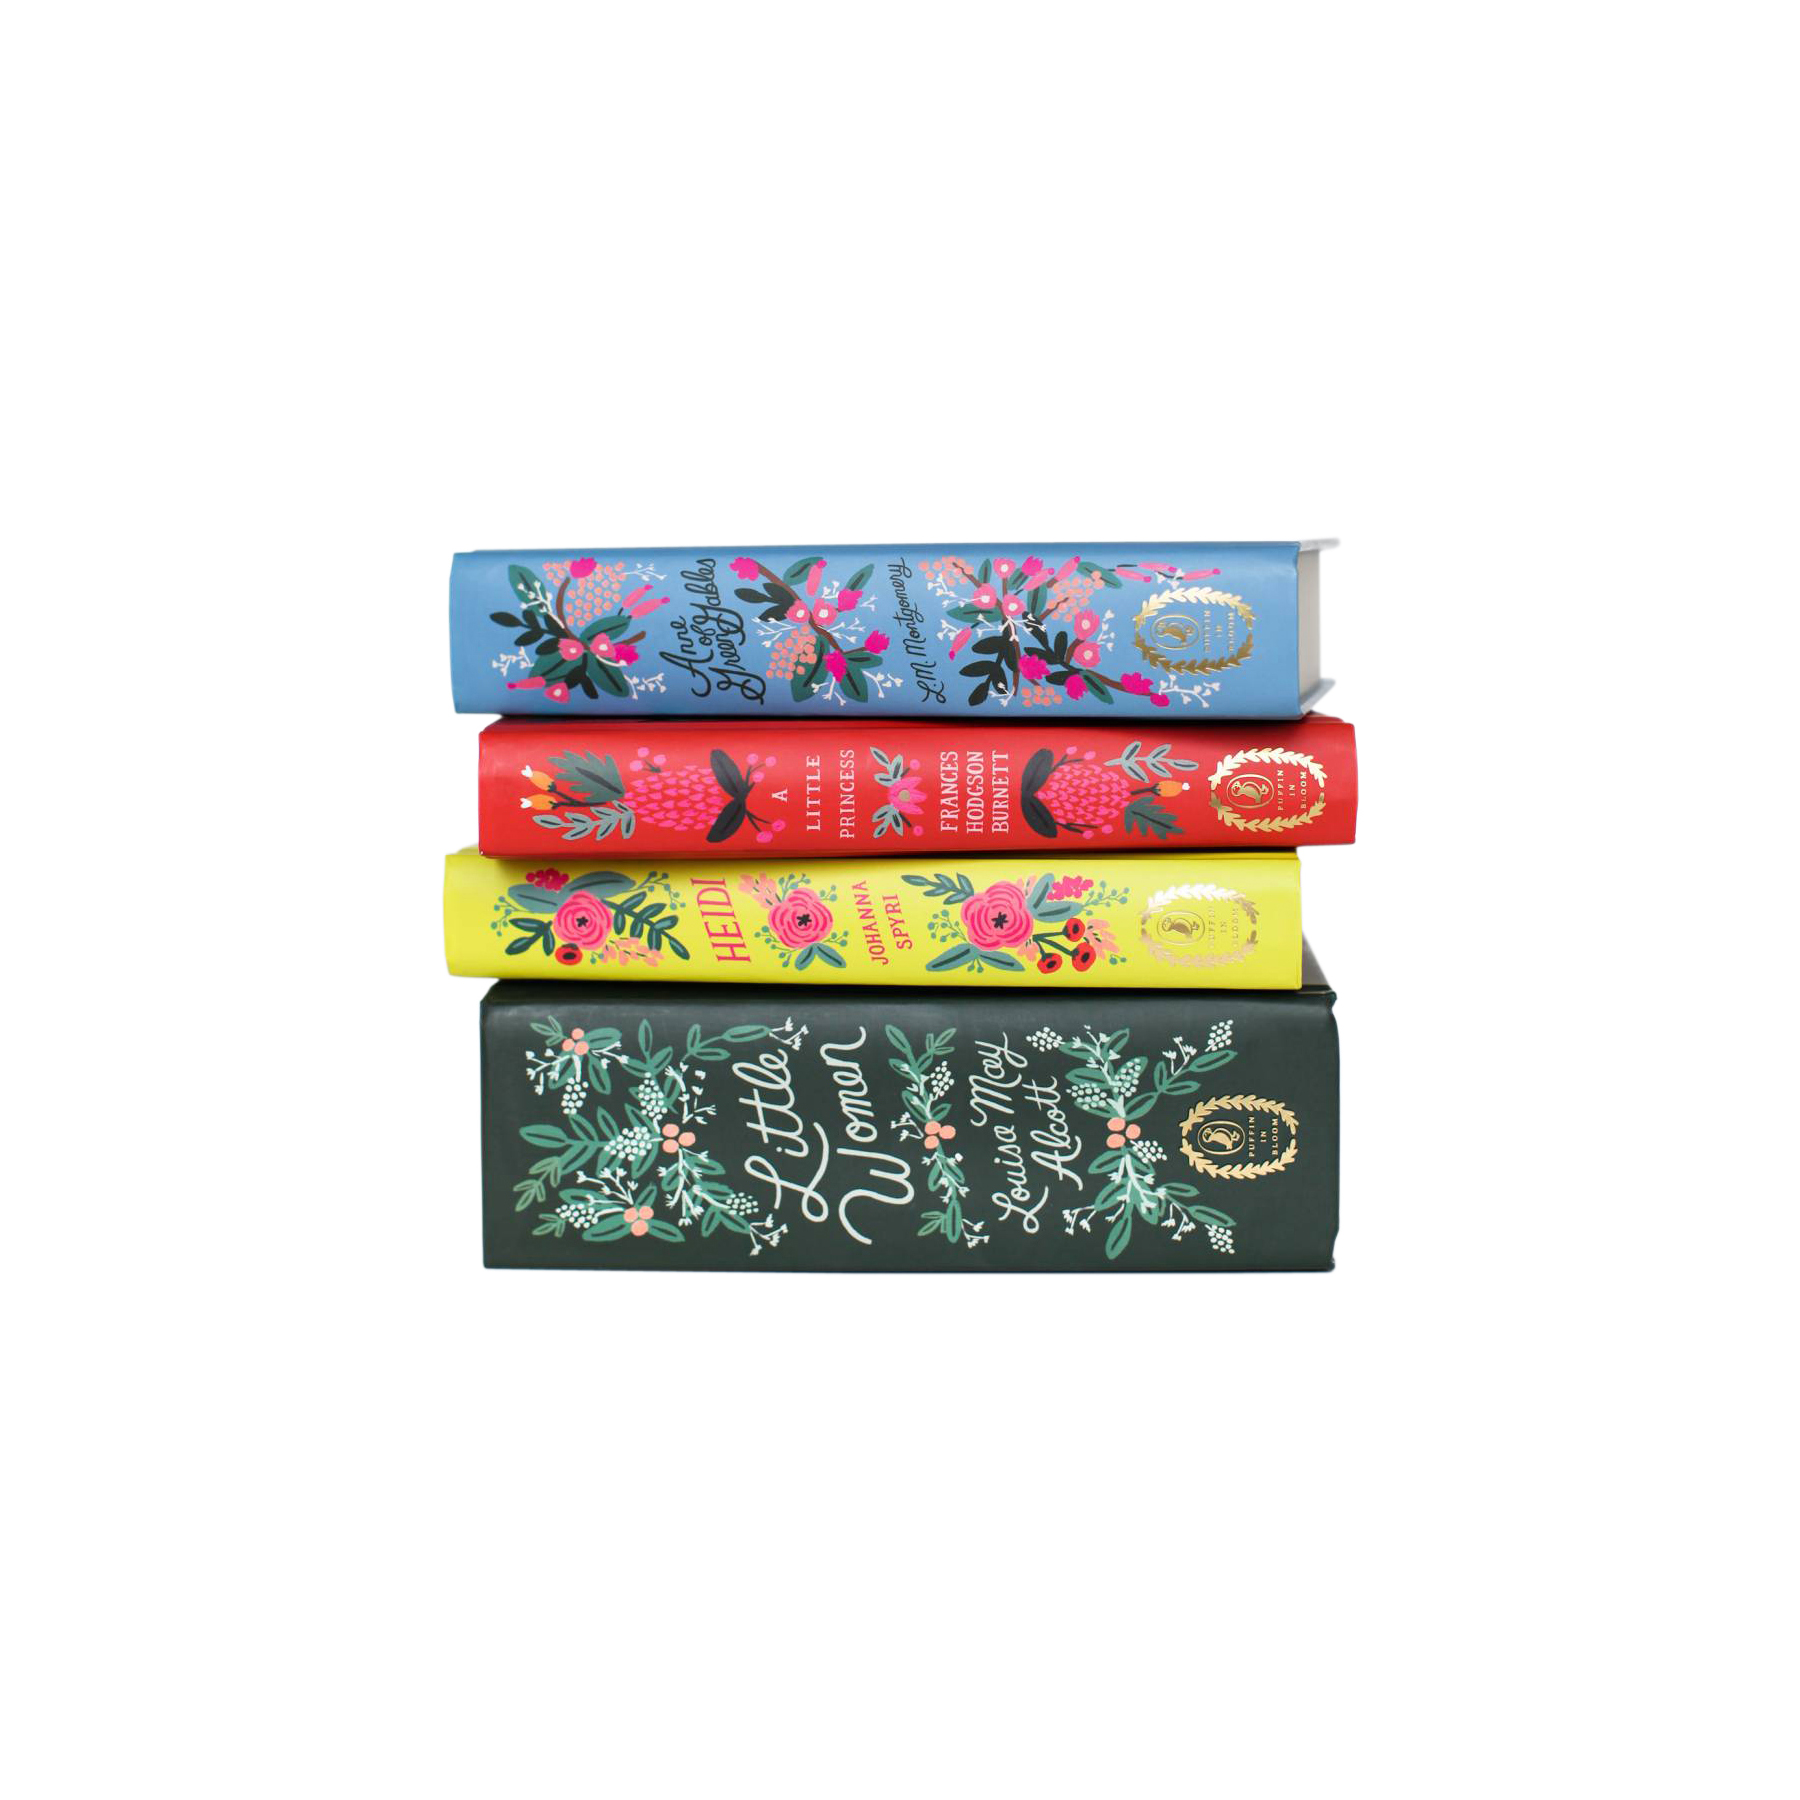 In Bloom Book Collection